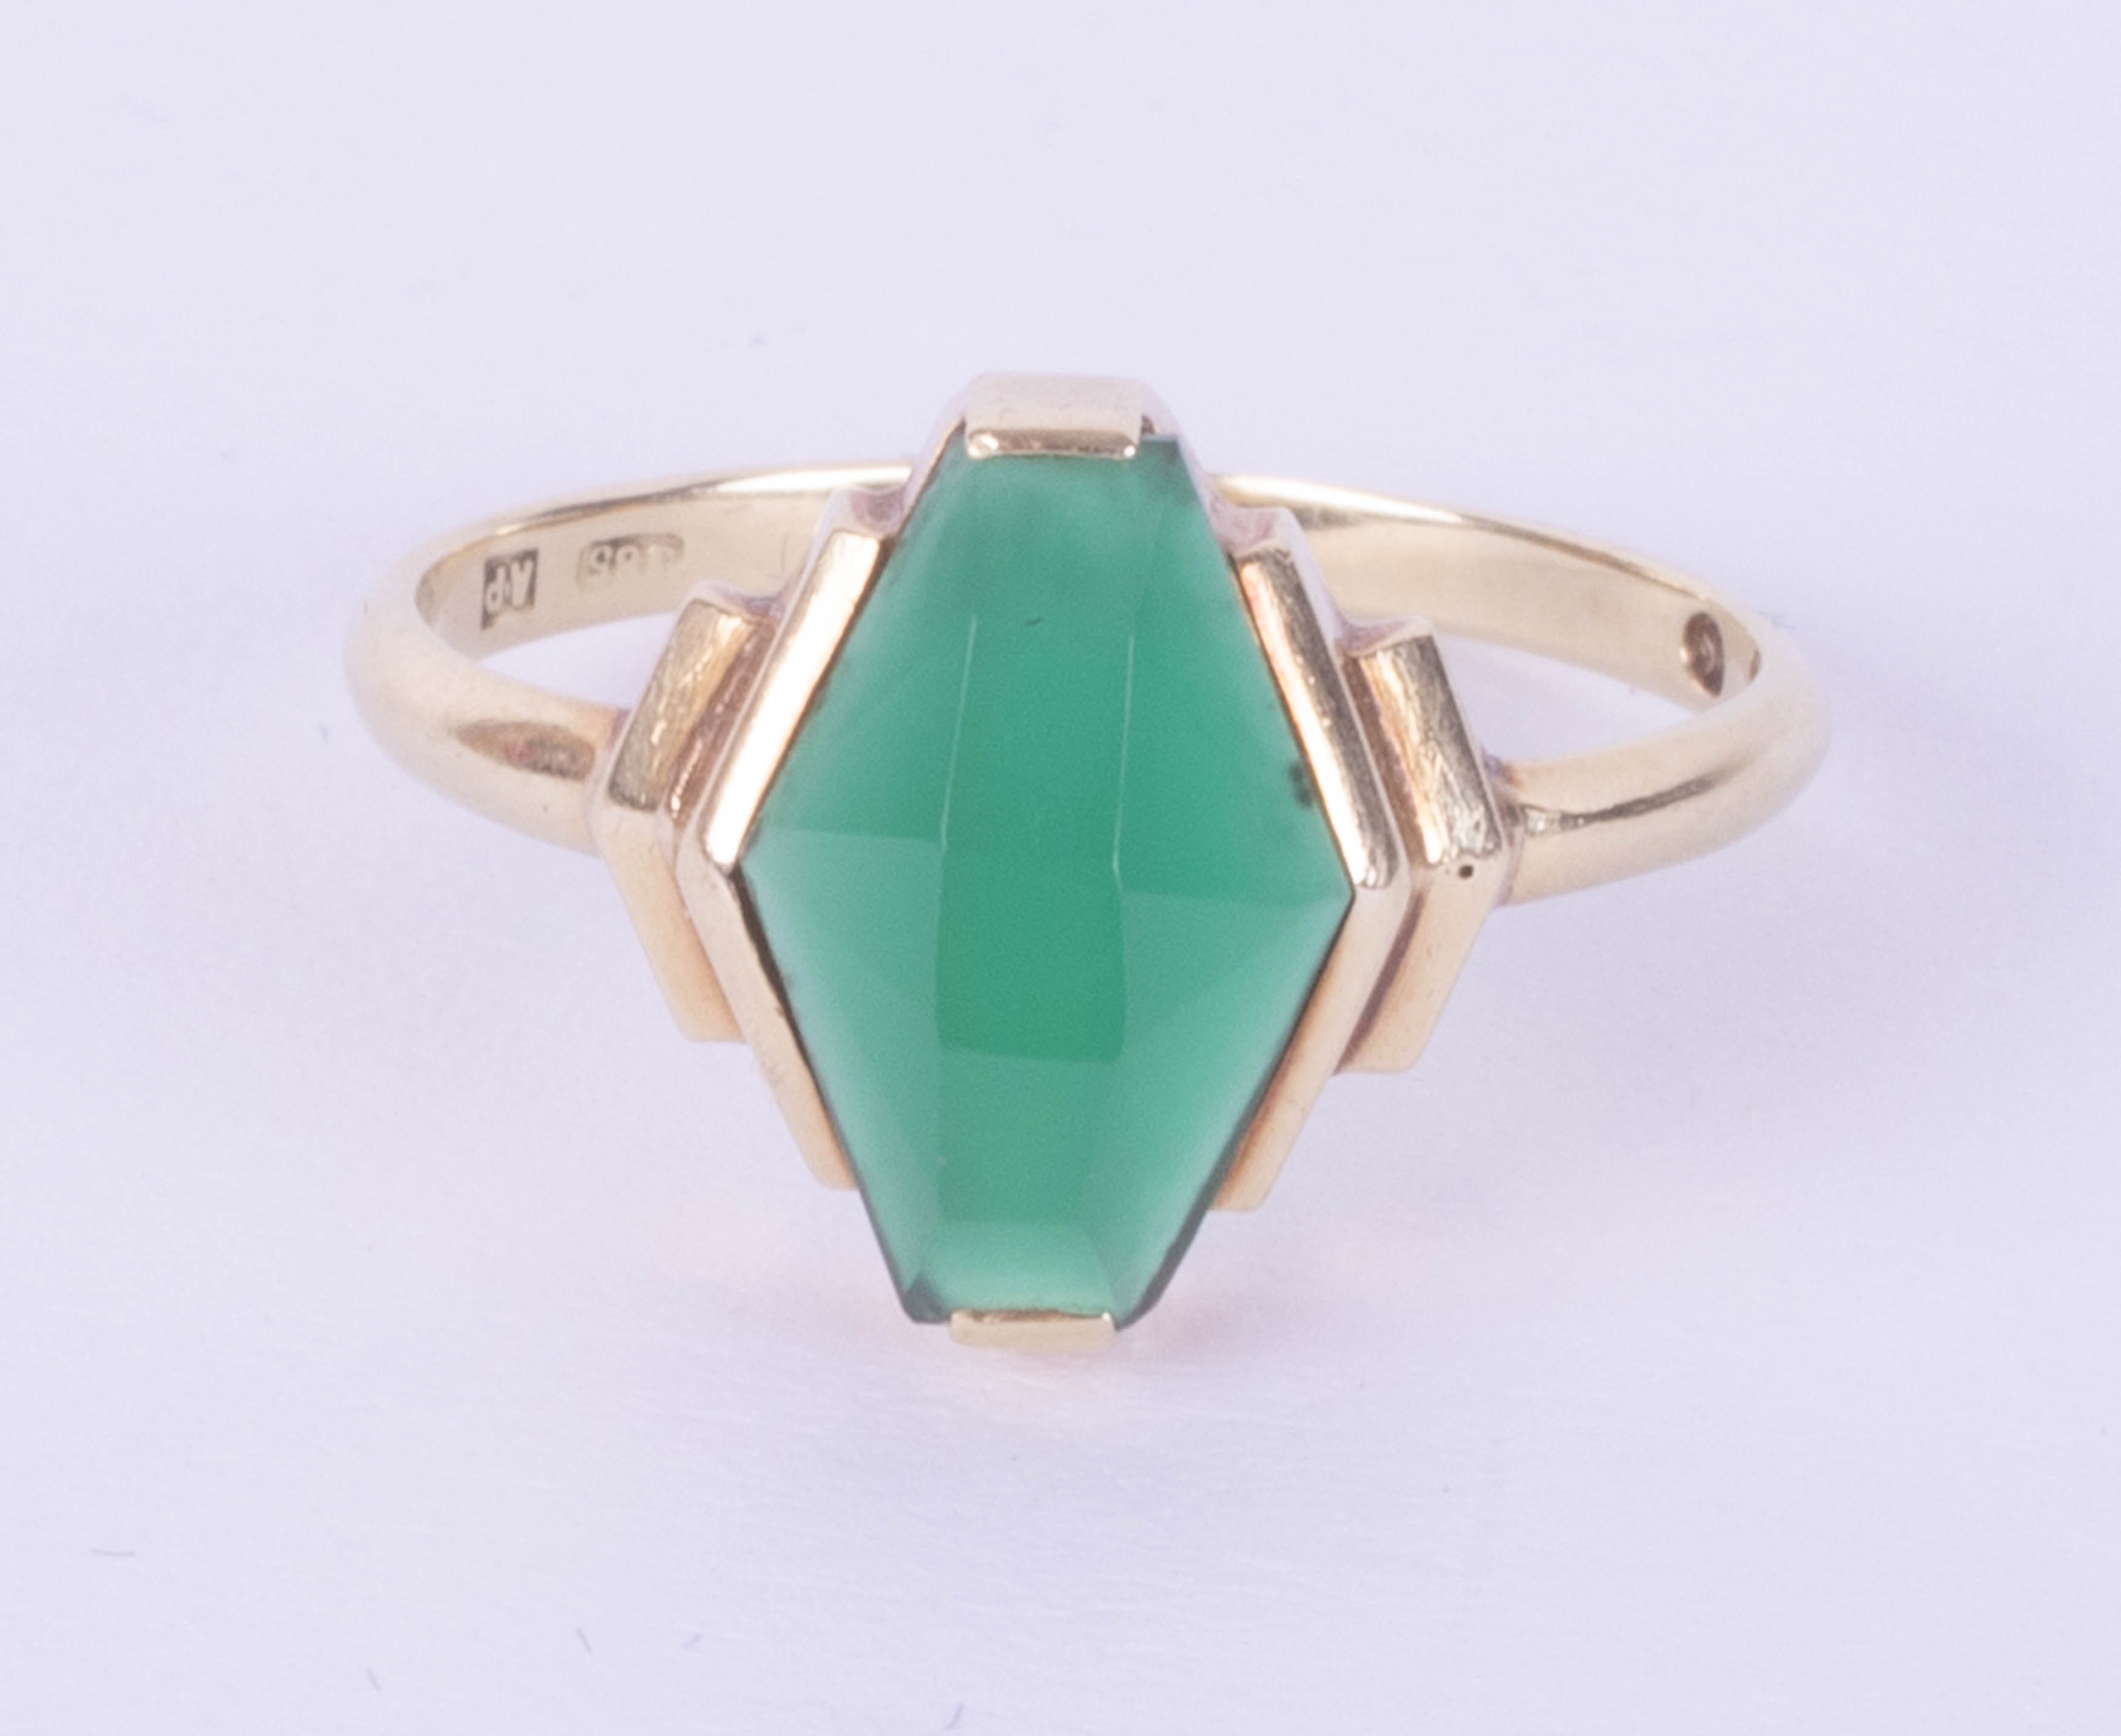 A 14ct green gemstone set ring, maker's mark A.P, size N.